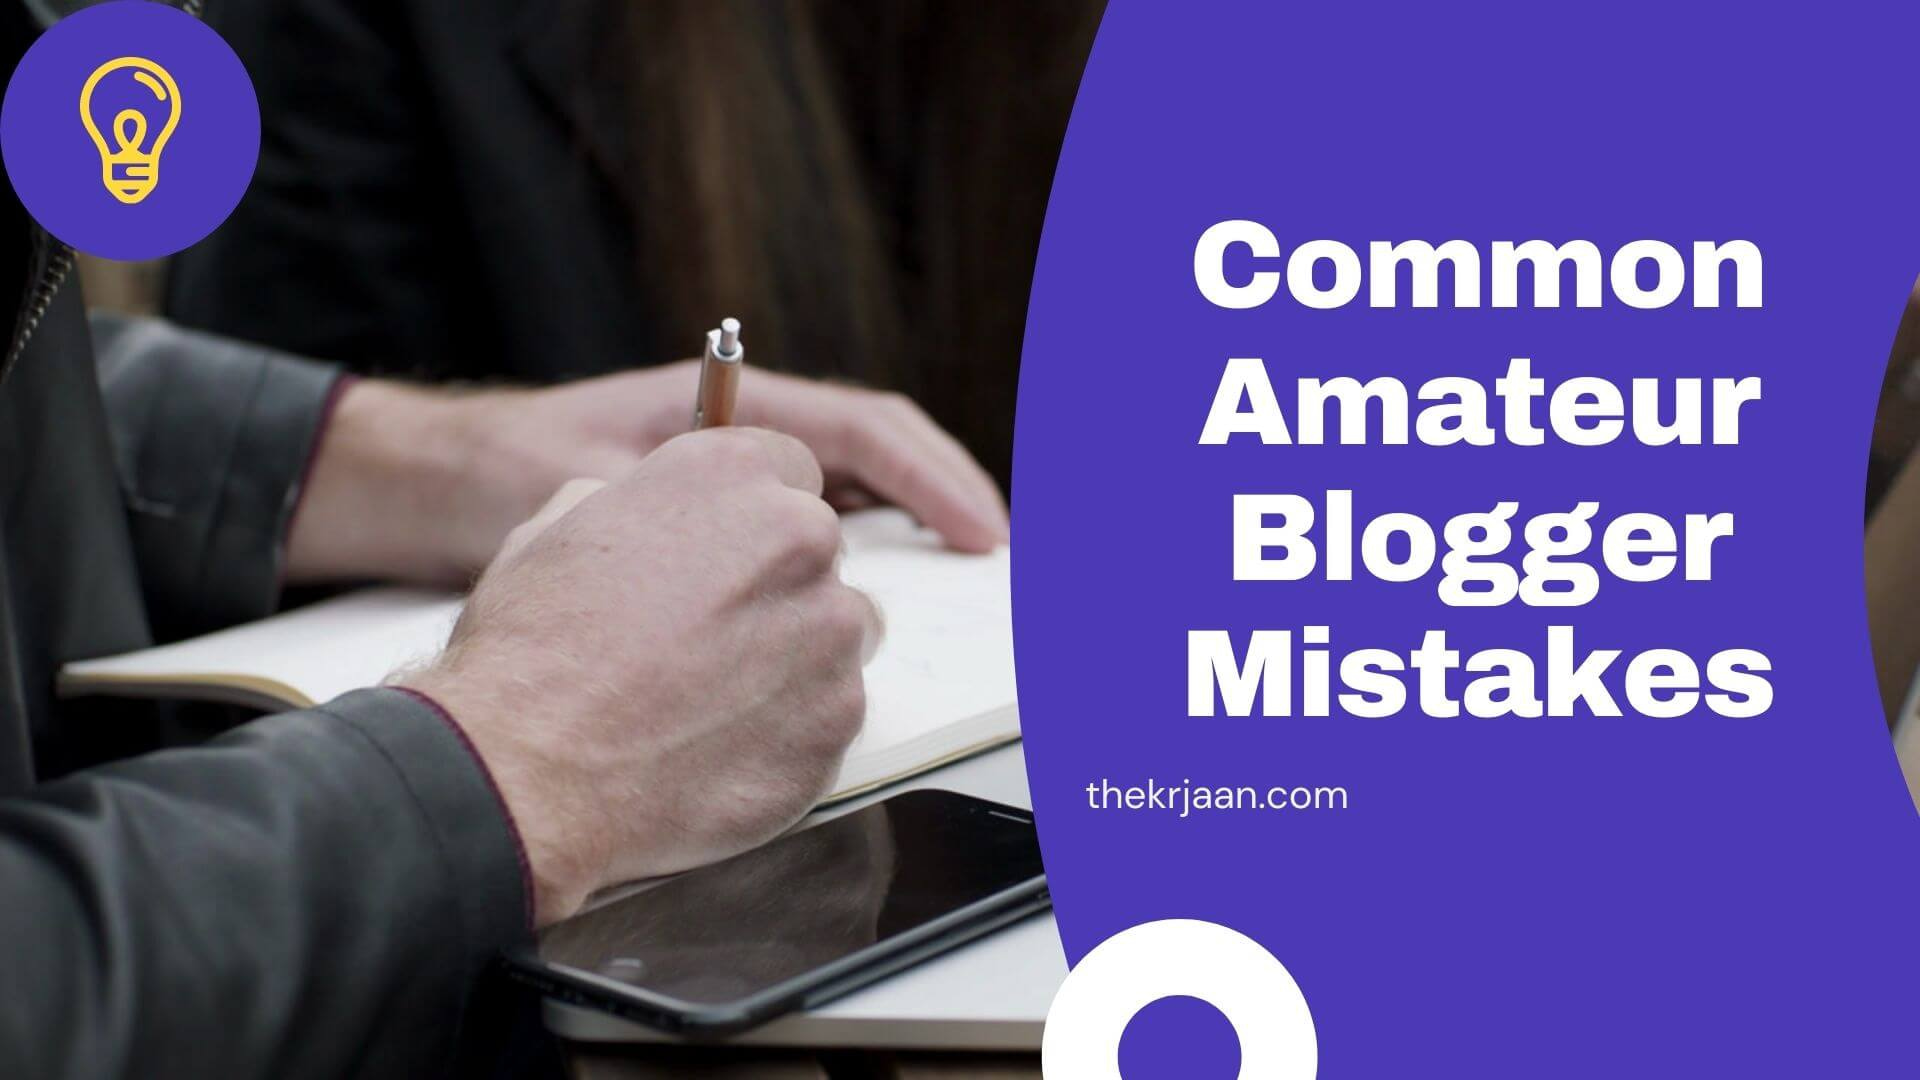 Common Amateur Blogger Mistakes Stop These Mistakes Right Now